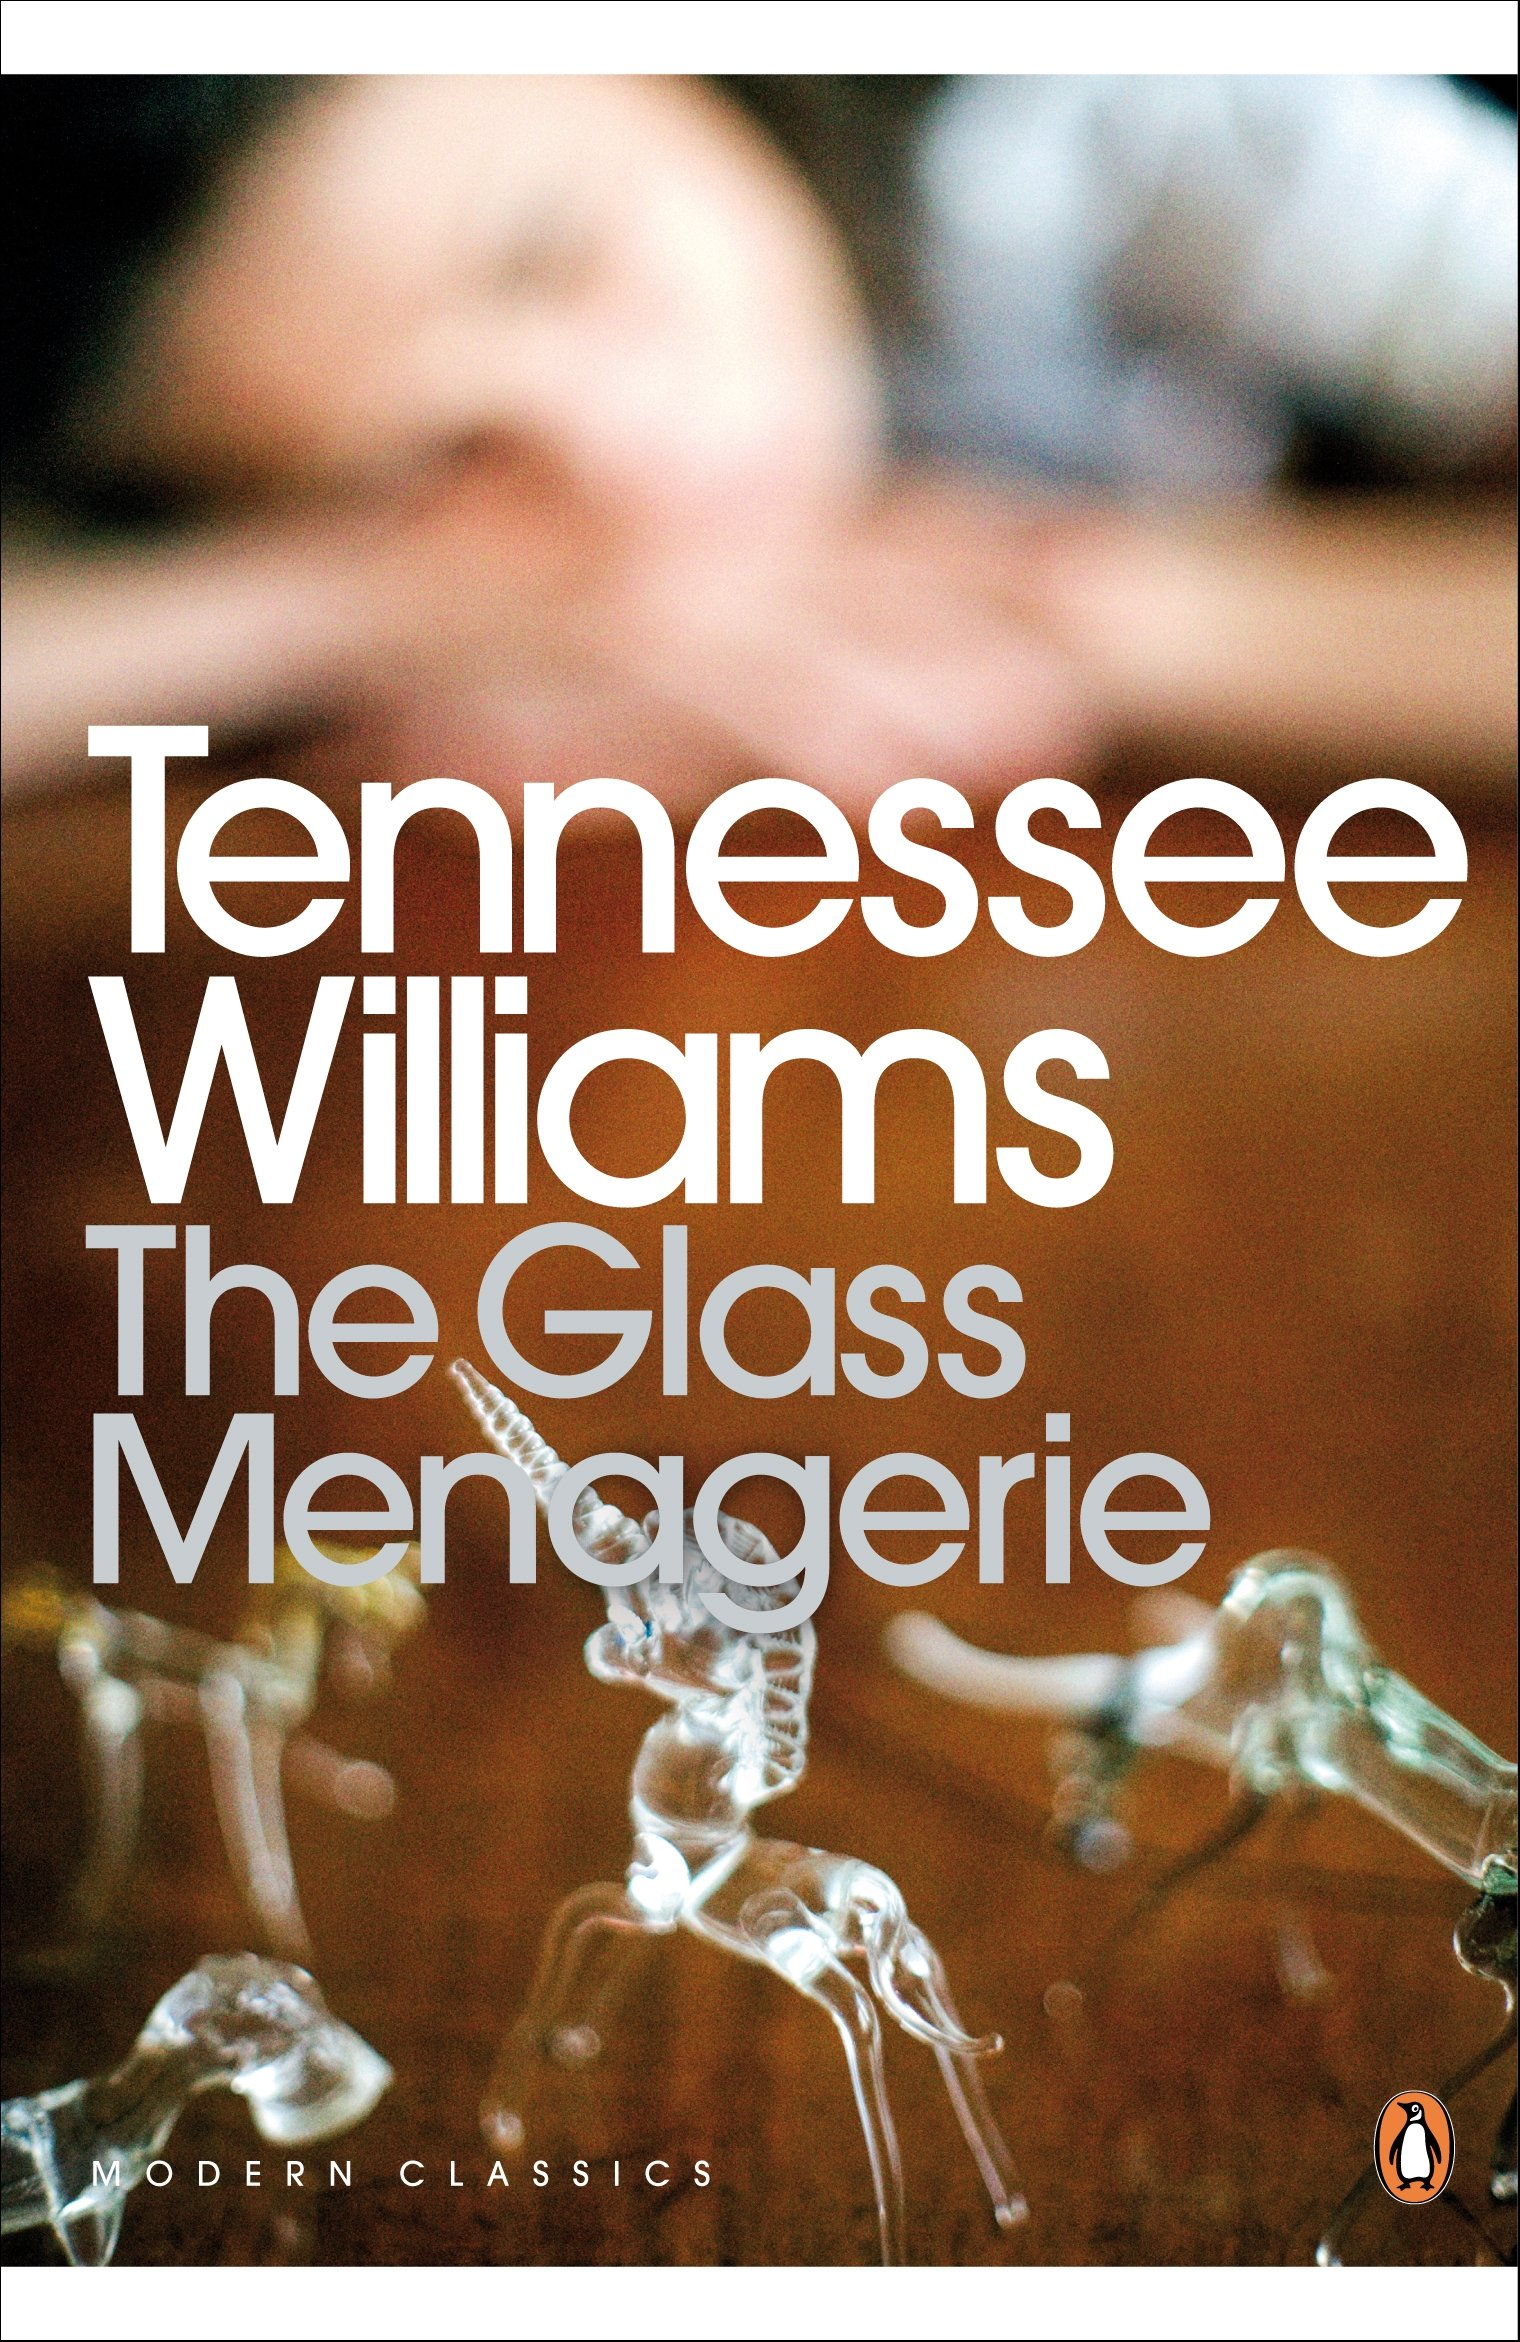 buy the glass menagerie penguin modern classics book online at buy the glass menagerie penguin modern classics book online at low prices in the glass menagerie penguin modern classics reviews ratings